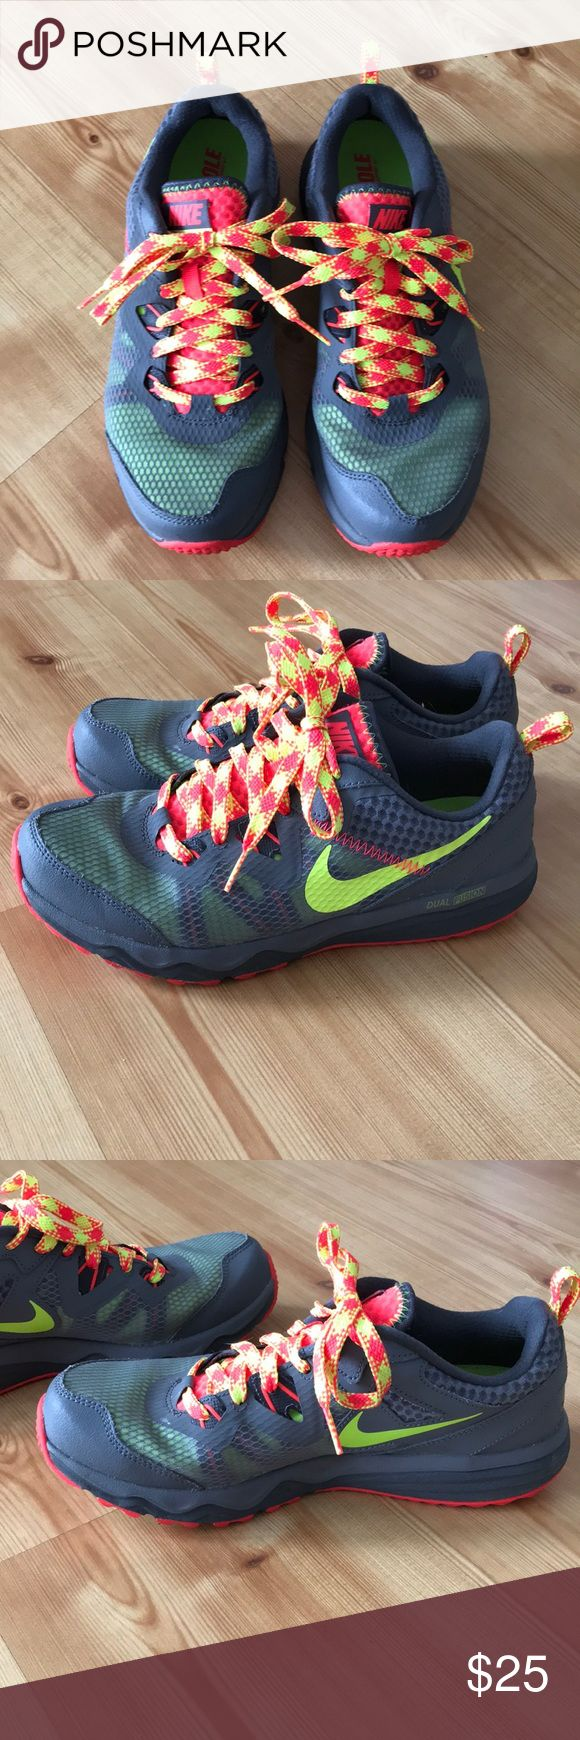 Nike Running Shoes Nike dual fusion trail women's running shoes in excellent condition. Worn a few times. Size 7.5 Nike Shoes Sneakers #trailrunningshoes